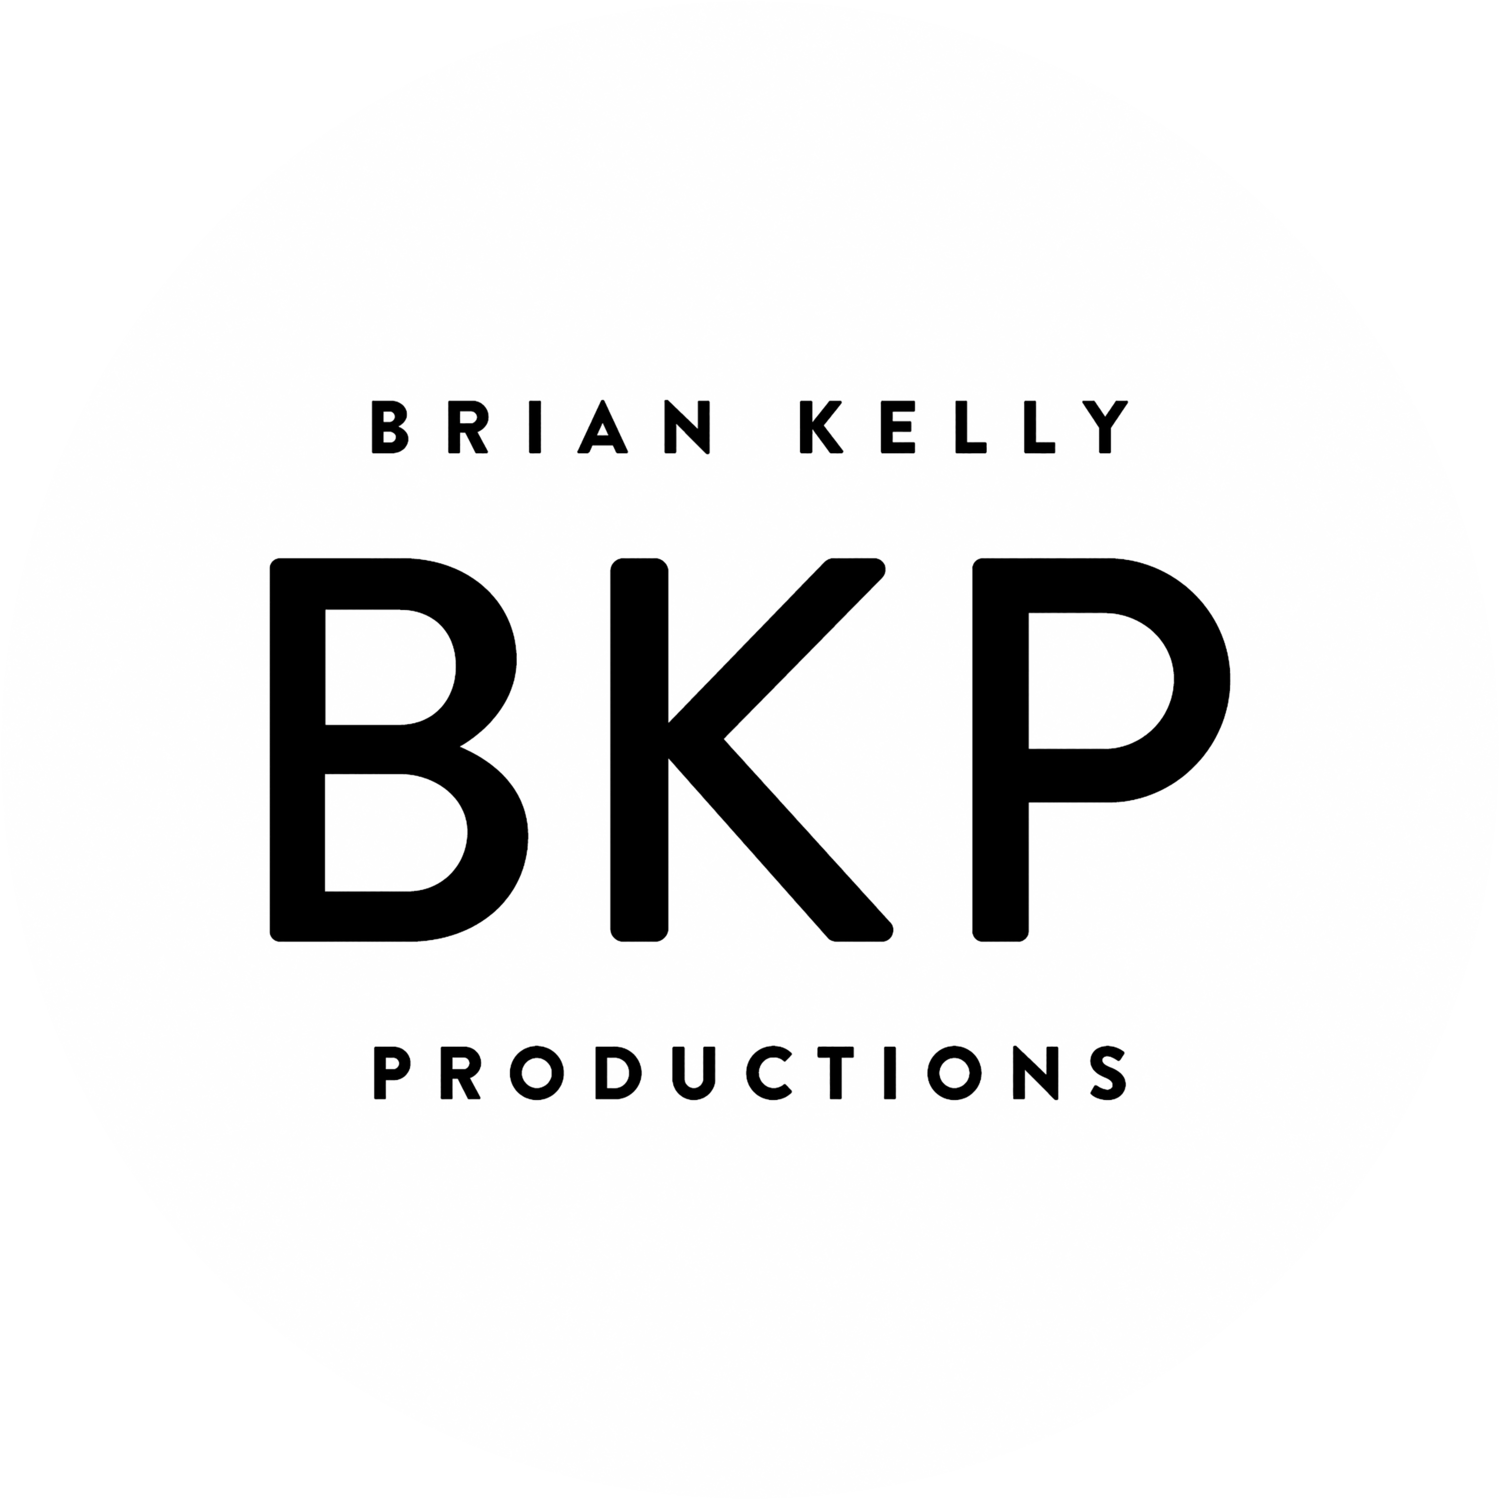 Brian Kelly Productions